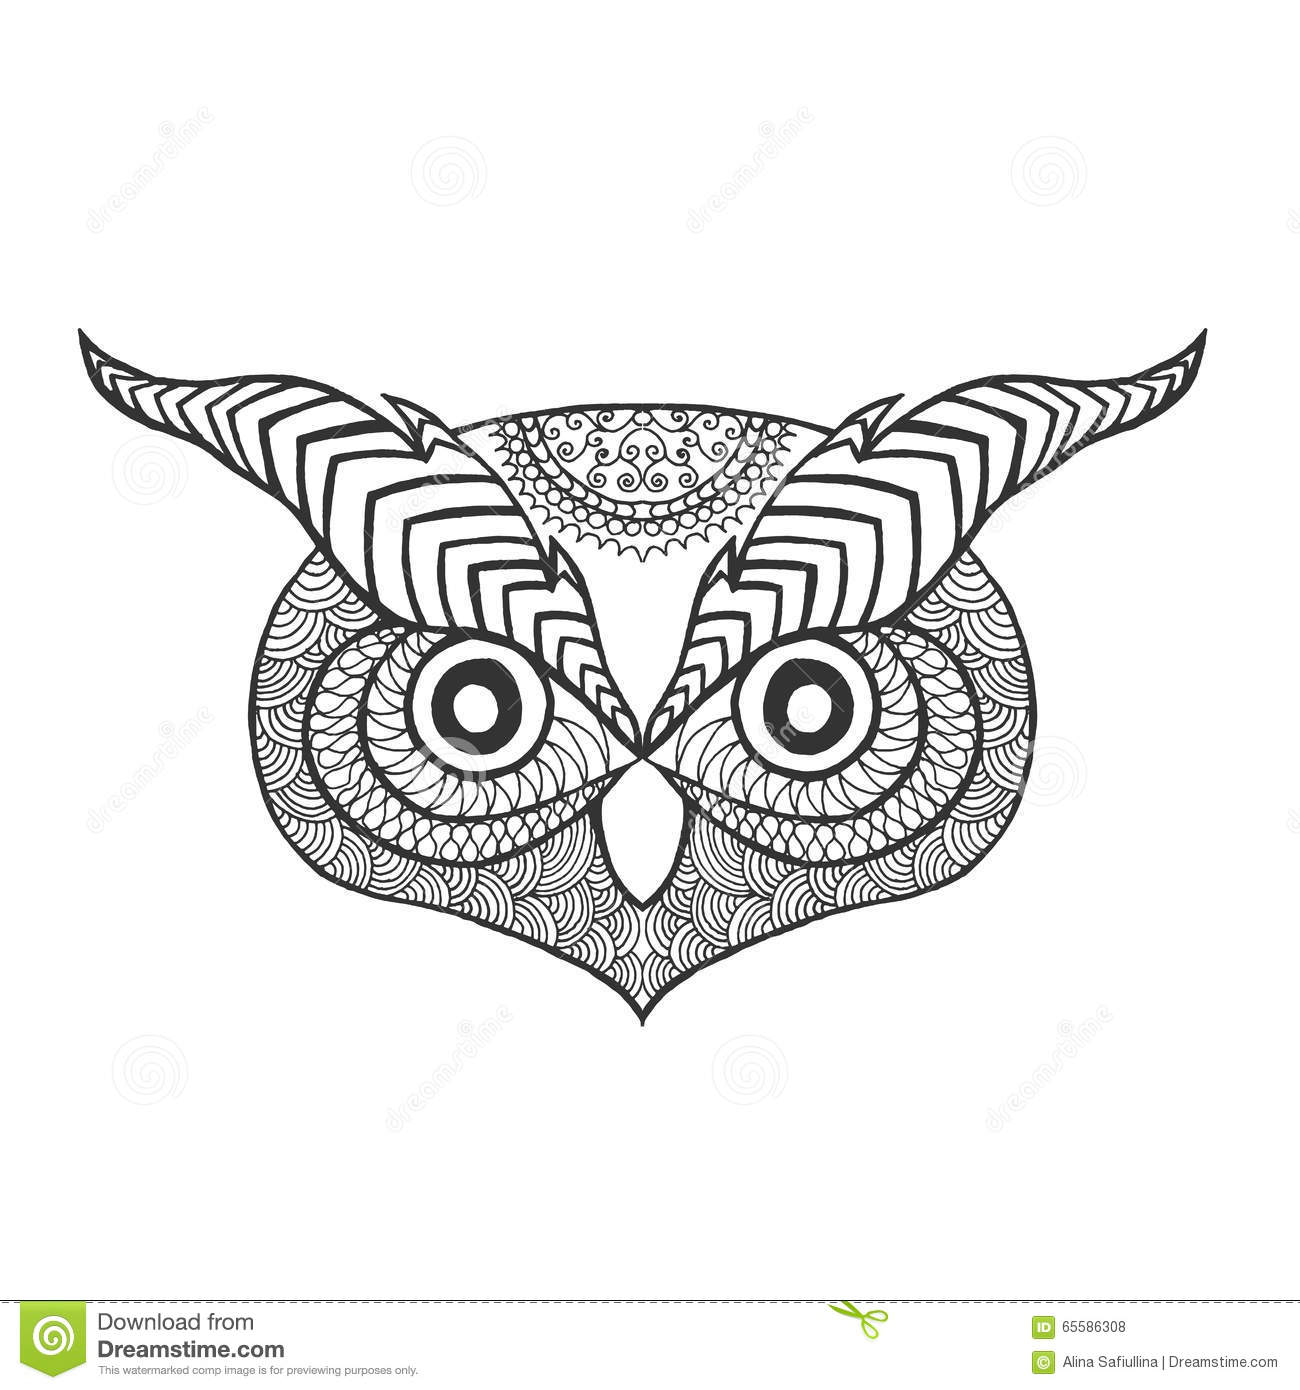 Eagle Owl Adult Antistress Coloring Page Cartoon Vector